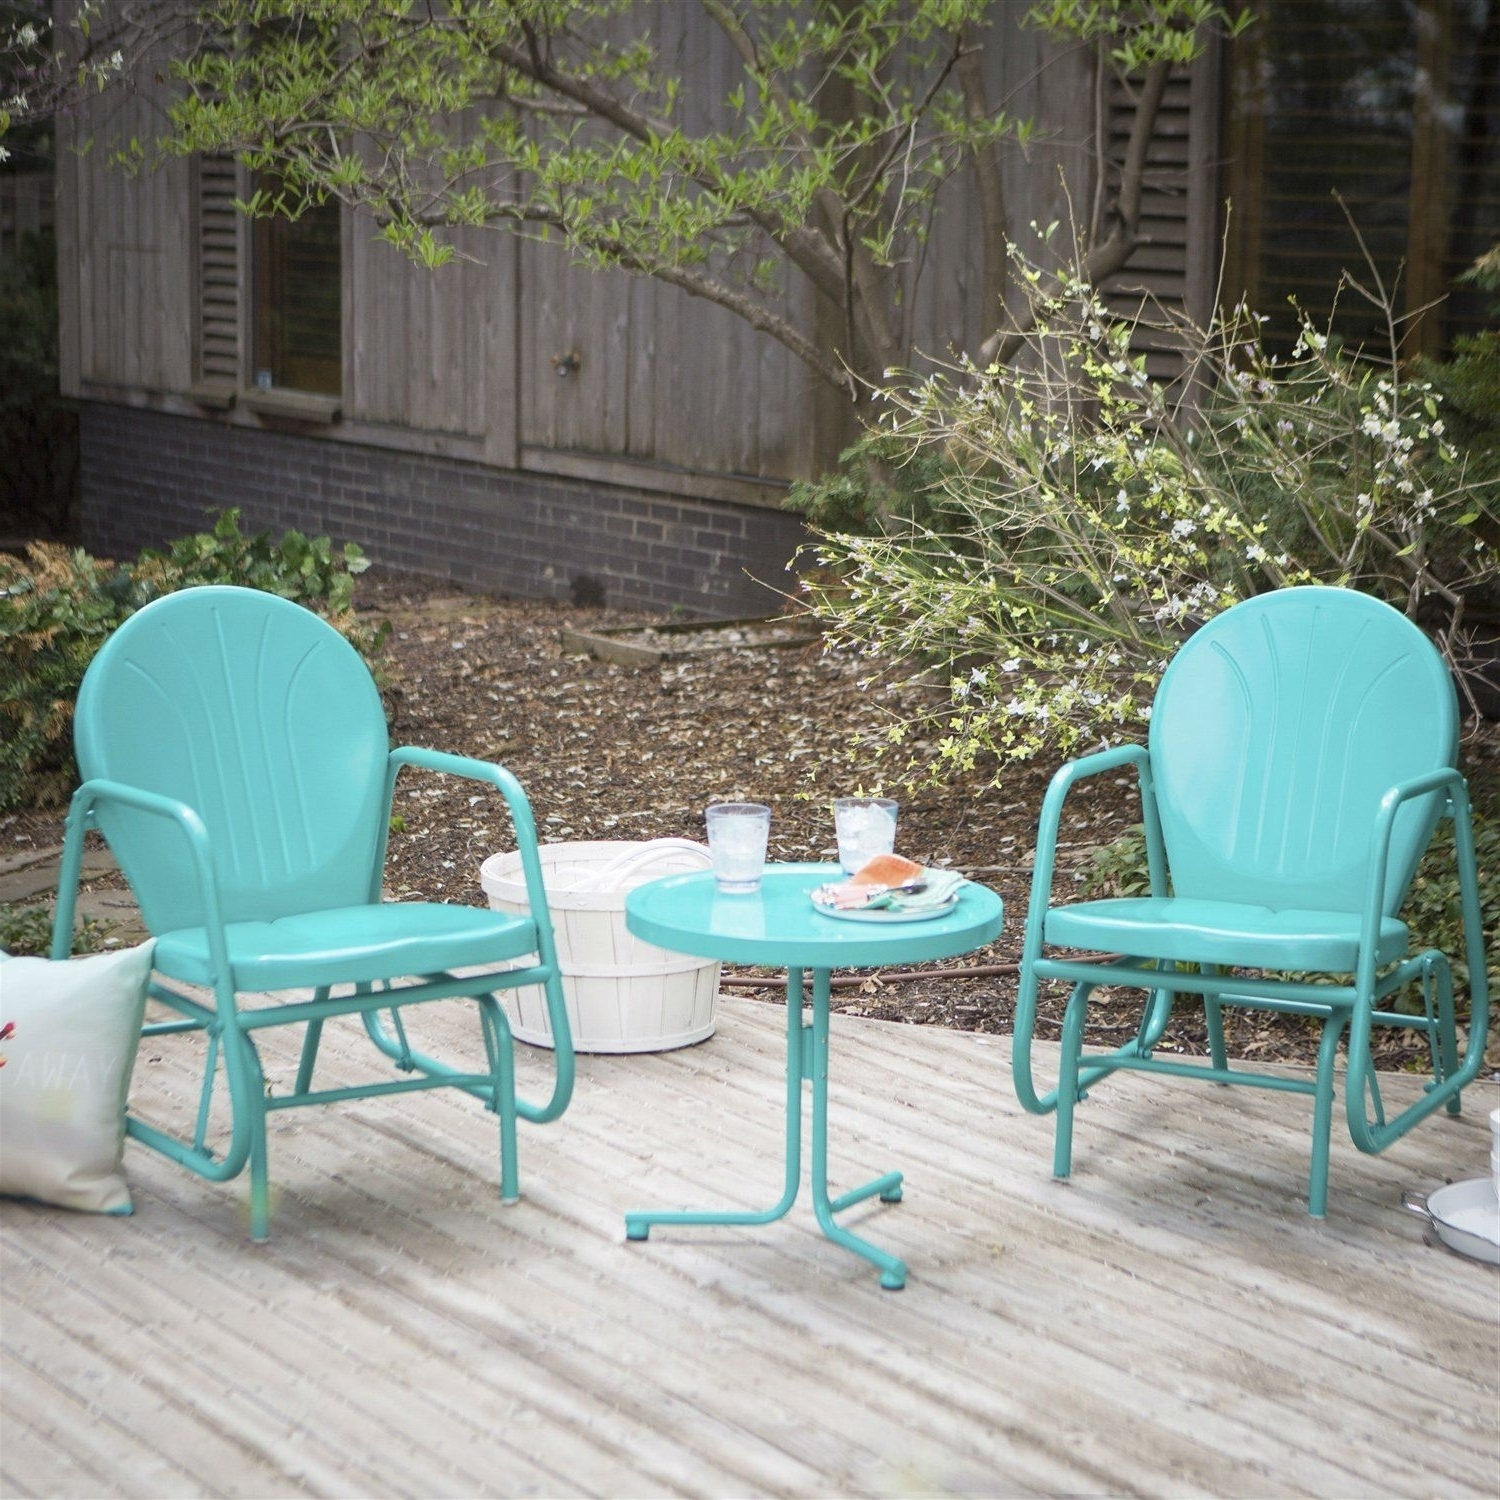 Best And Newest Outdoor 3 Piece Retro Turquoise Blue Patio Furniture Glider Chair Within Patio Conversation Sets With Glider (View 4 of 20)